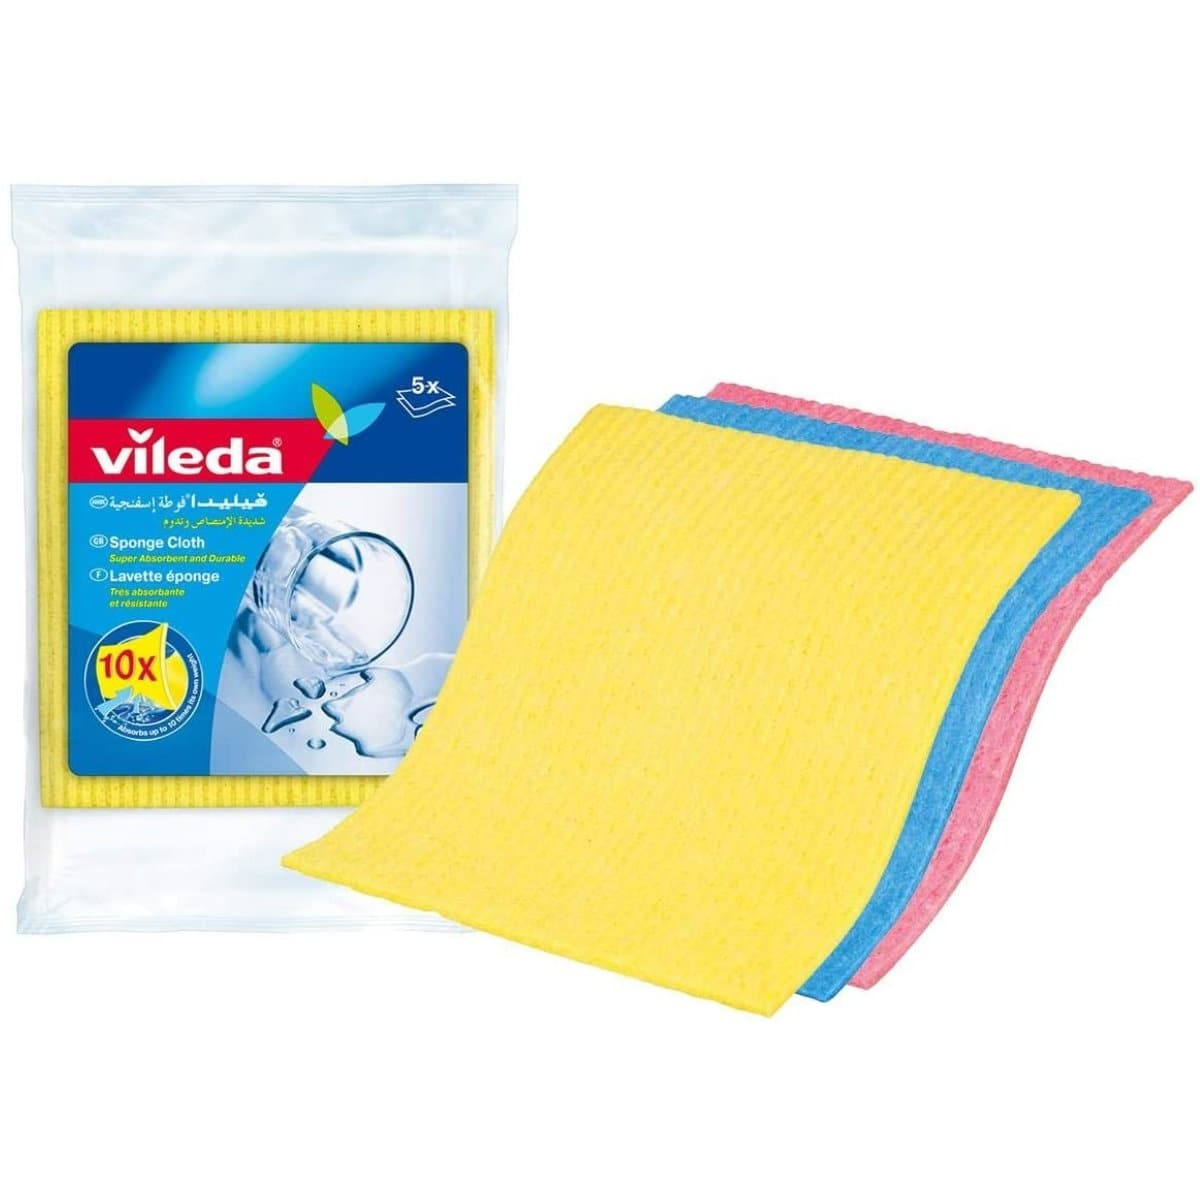 Vileda Sponge Cloth, 5/pack